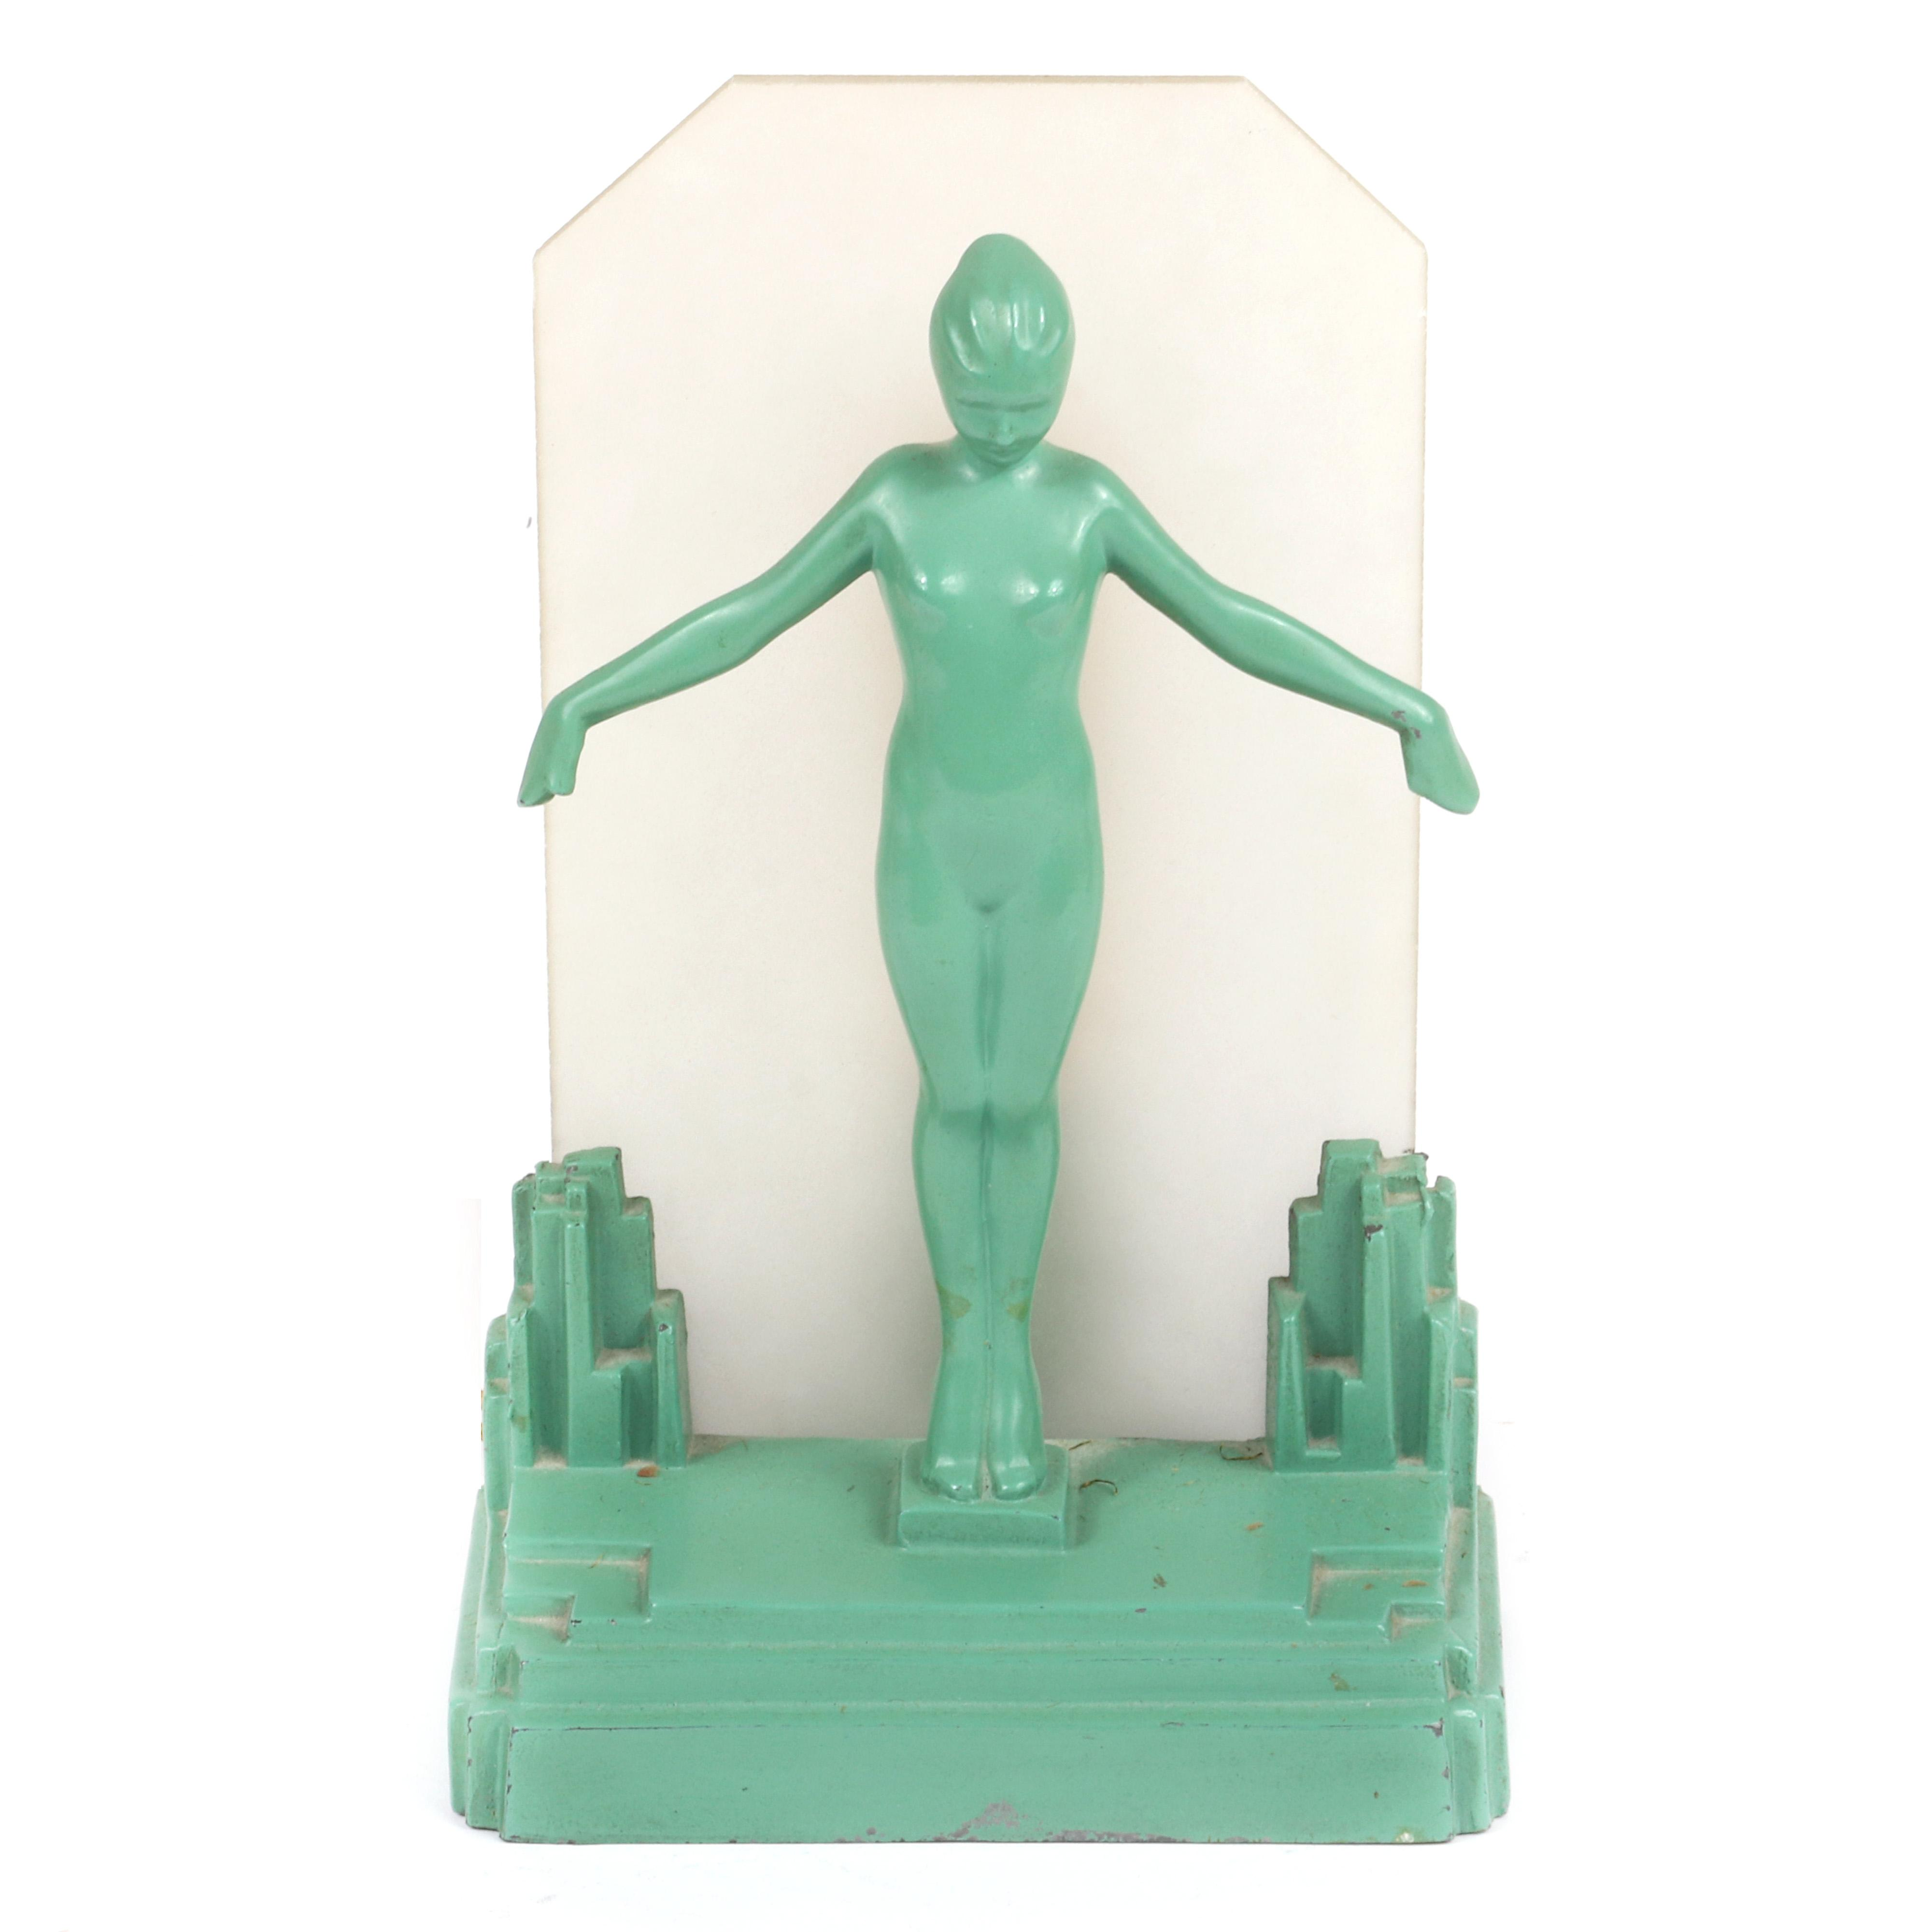 """Frankart art deco nude figural table lamp with frosted glass panel shade, original green finish. 11""""H x 6 1/2""""W"""